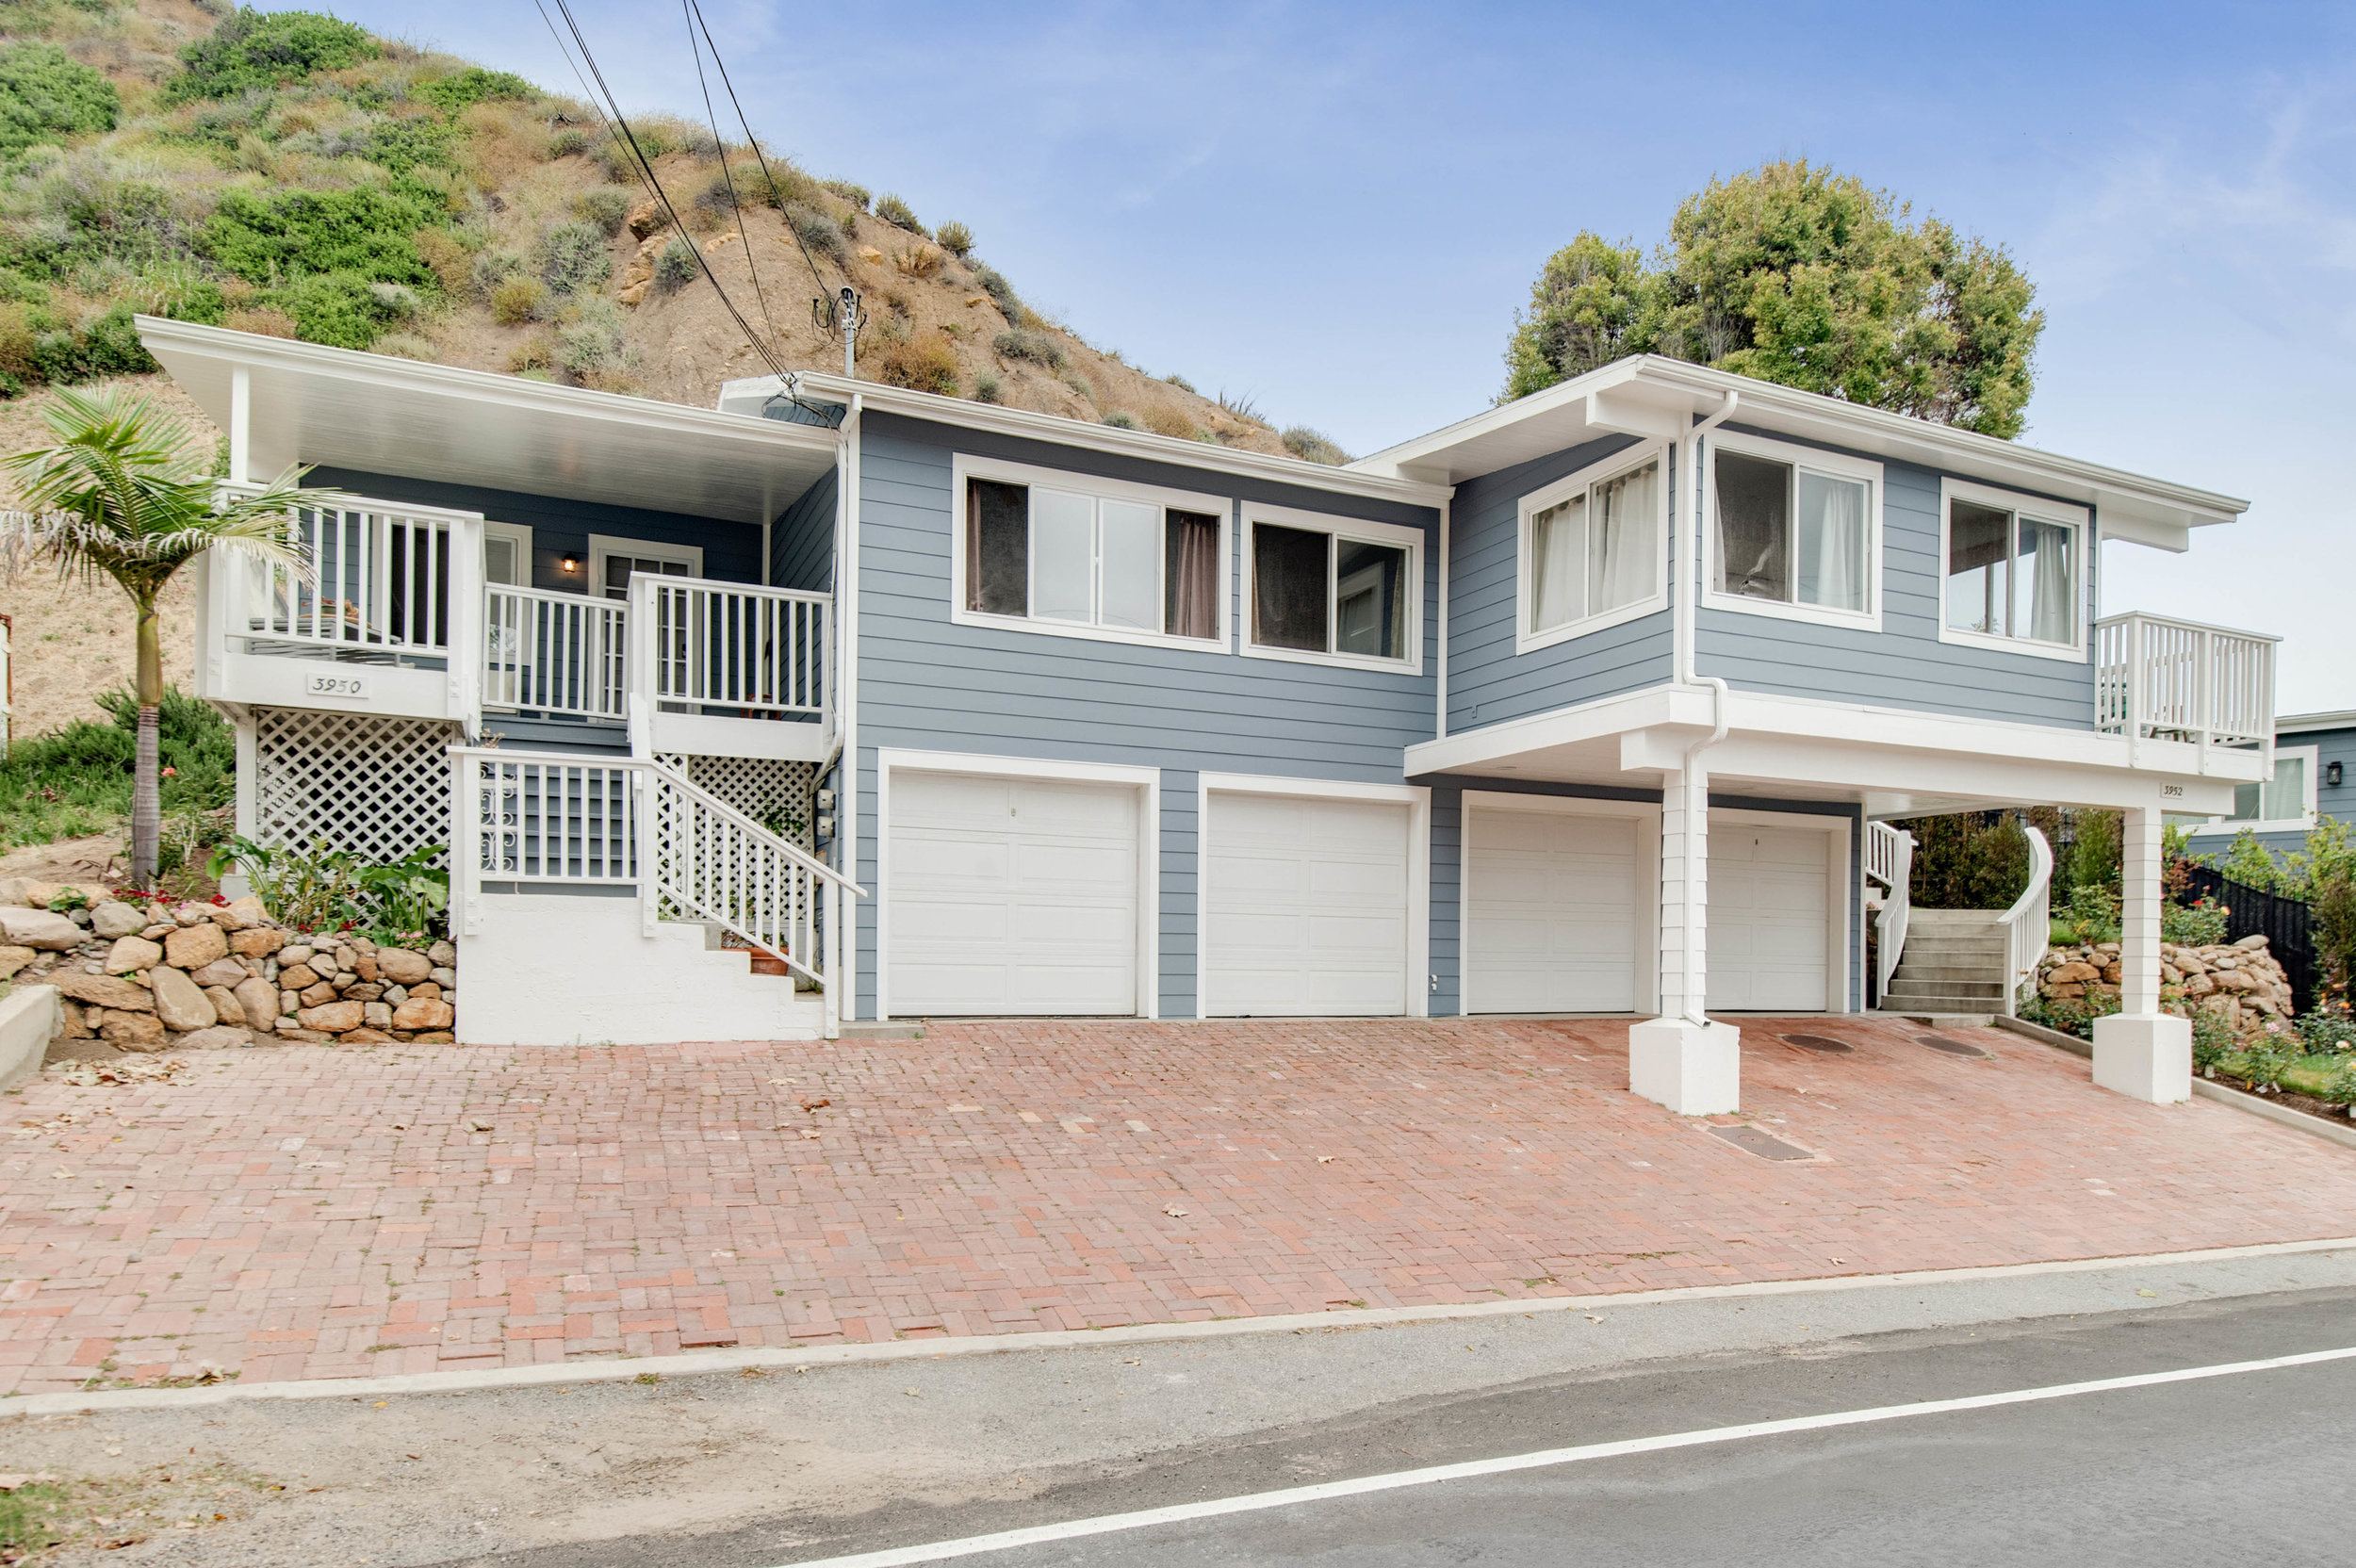 017 Front 3952 Las Flores For Sale Lease The Malibu Life Team Luxury Real Estate.jpg